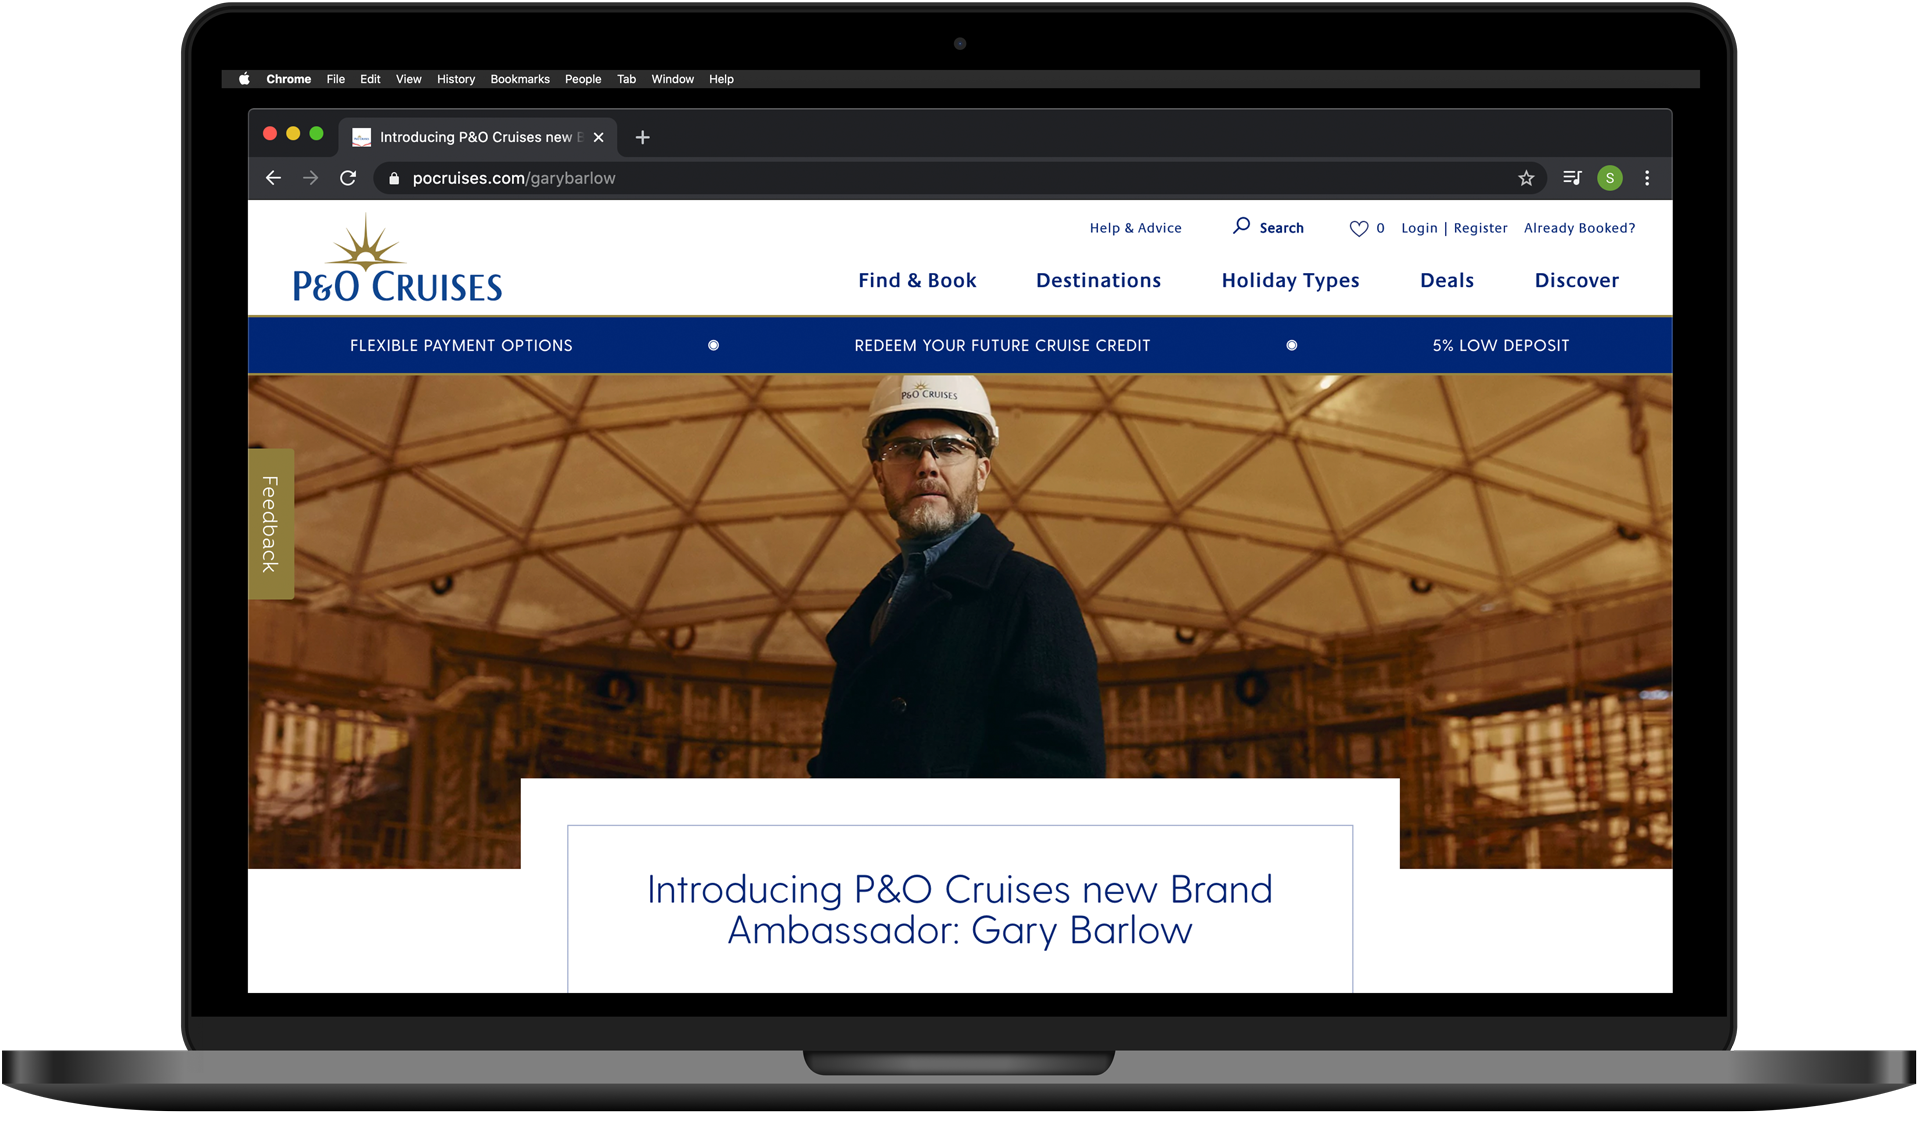 Image Of Gary Barlow In P&O Cruises' Launch Online